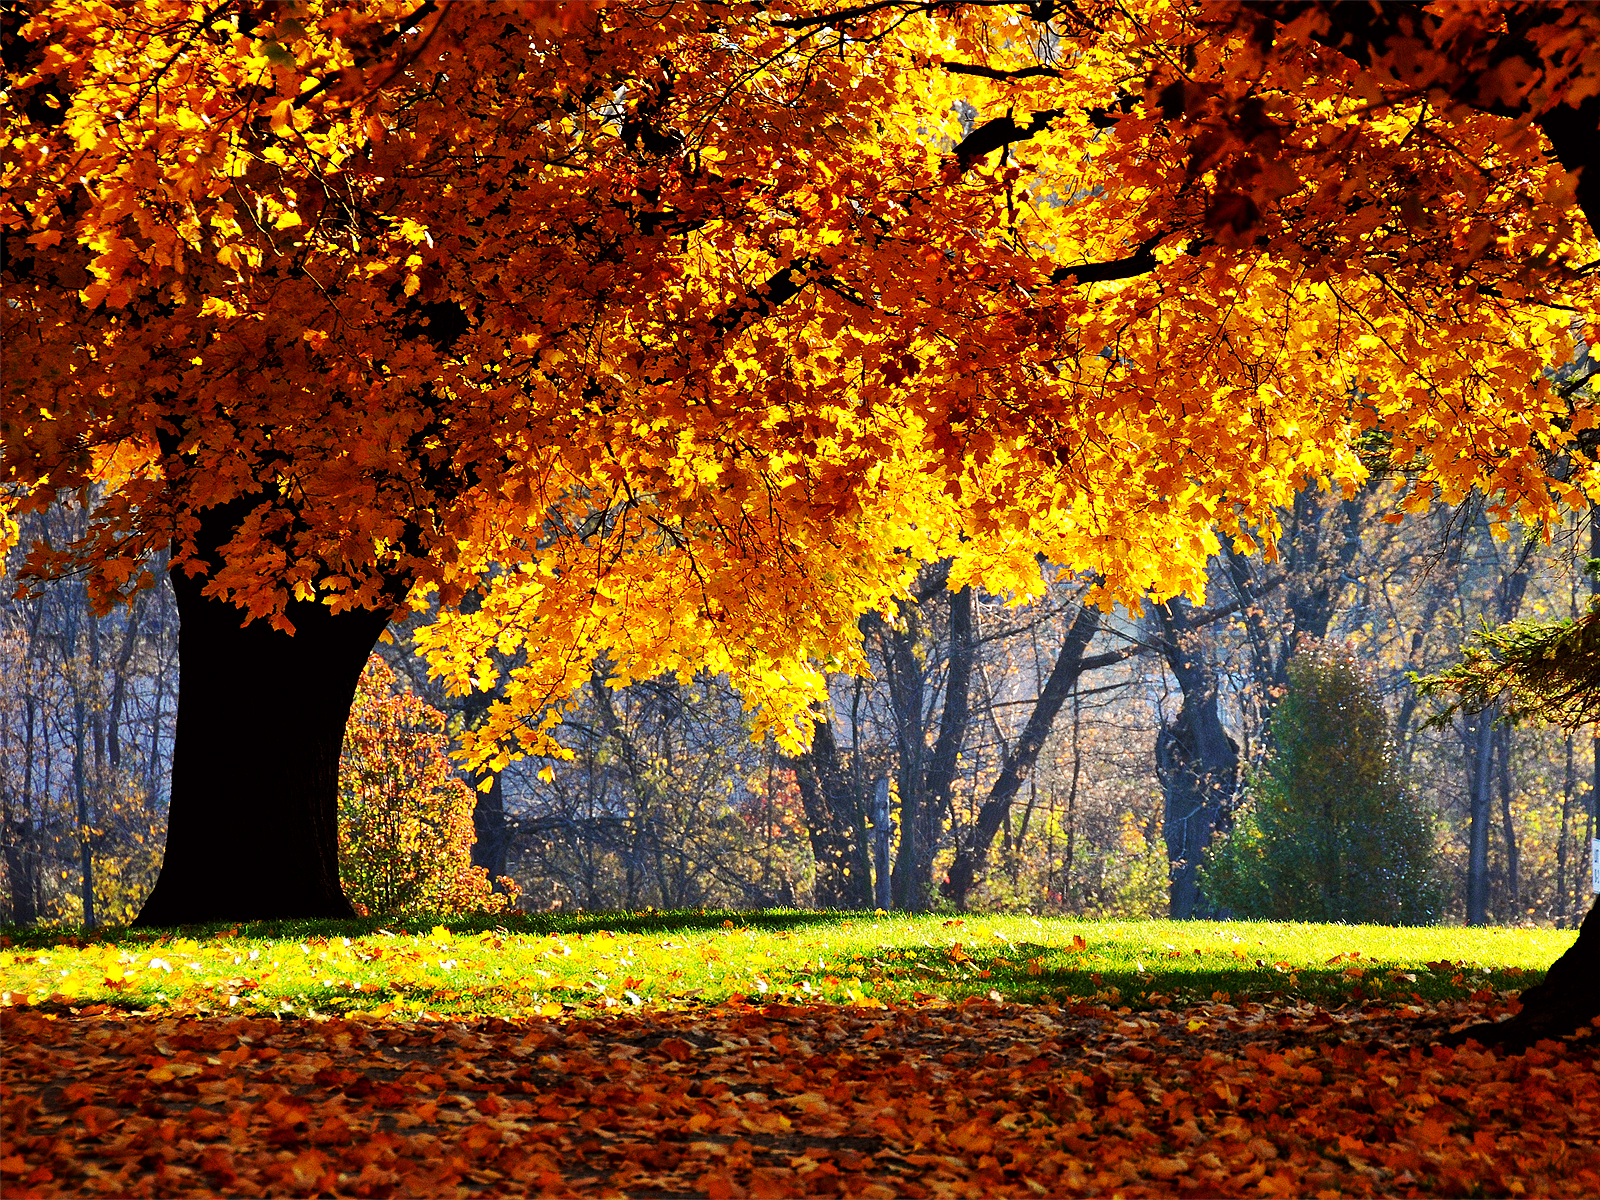 1600x1200 autumn falls desktop pc and mac wallpaper - Desktop wallpaper 1600x1200 ...